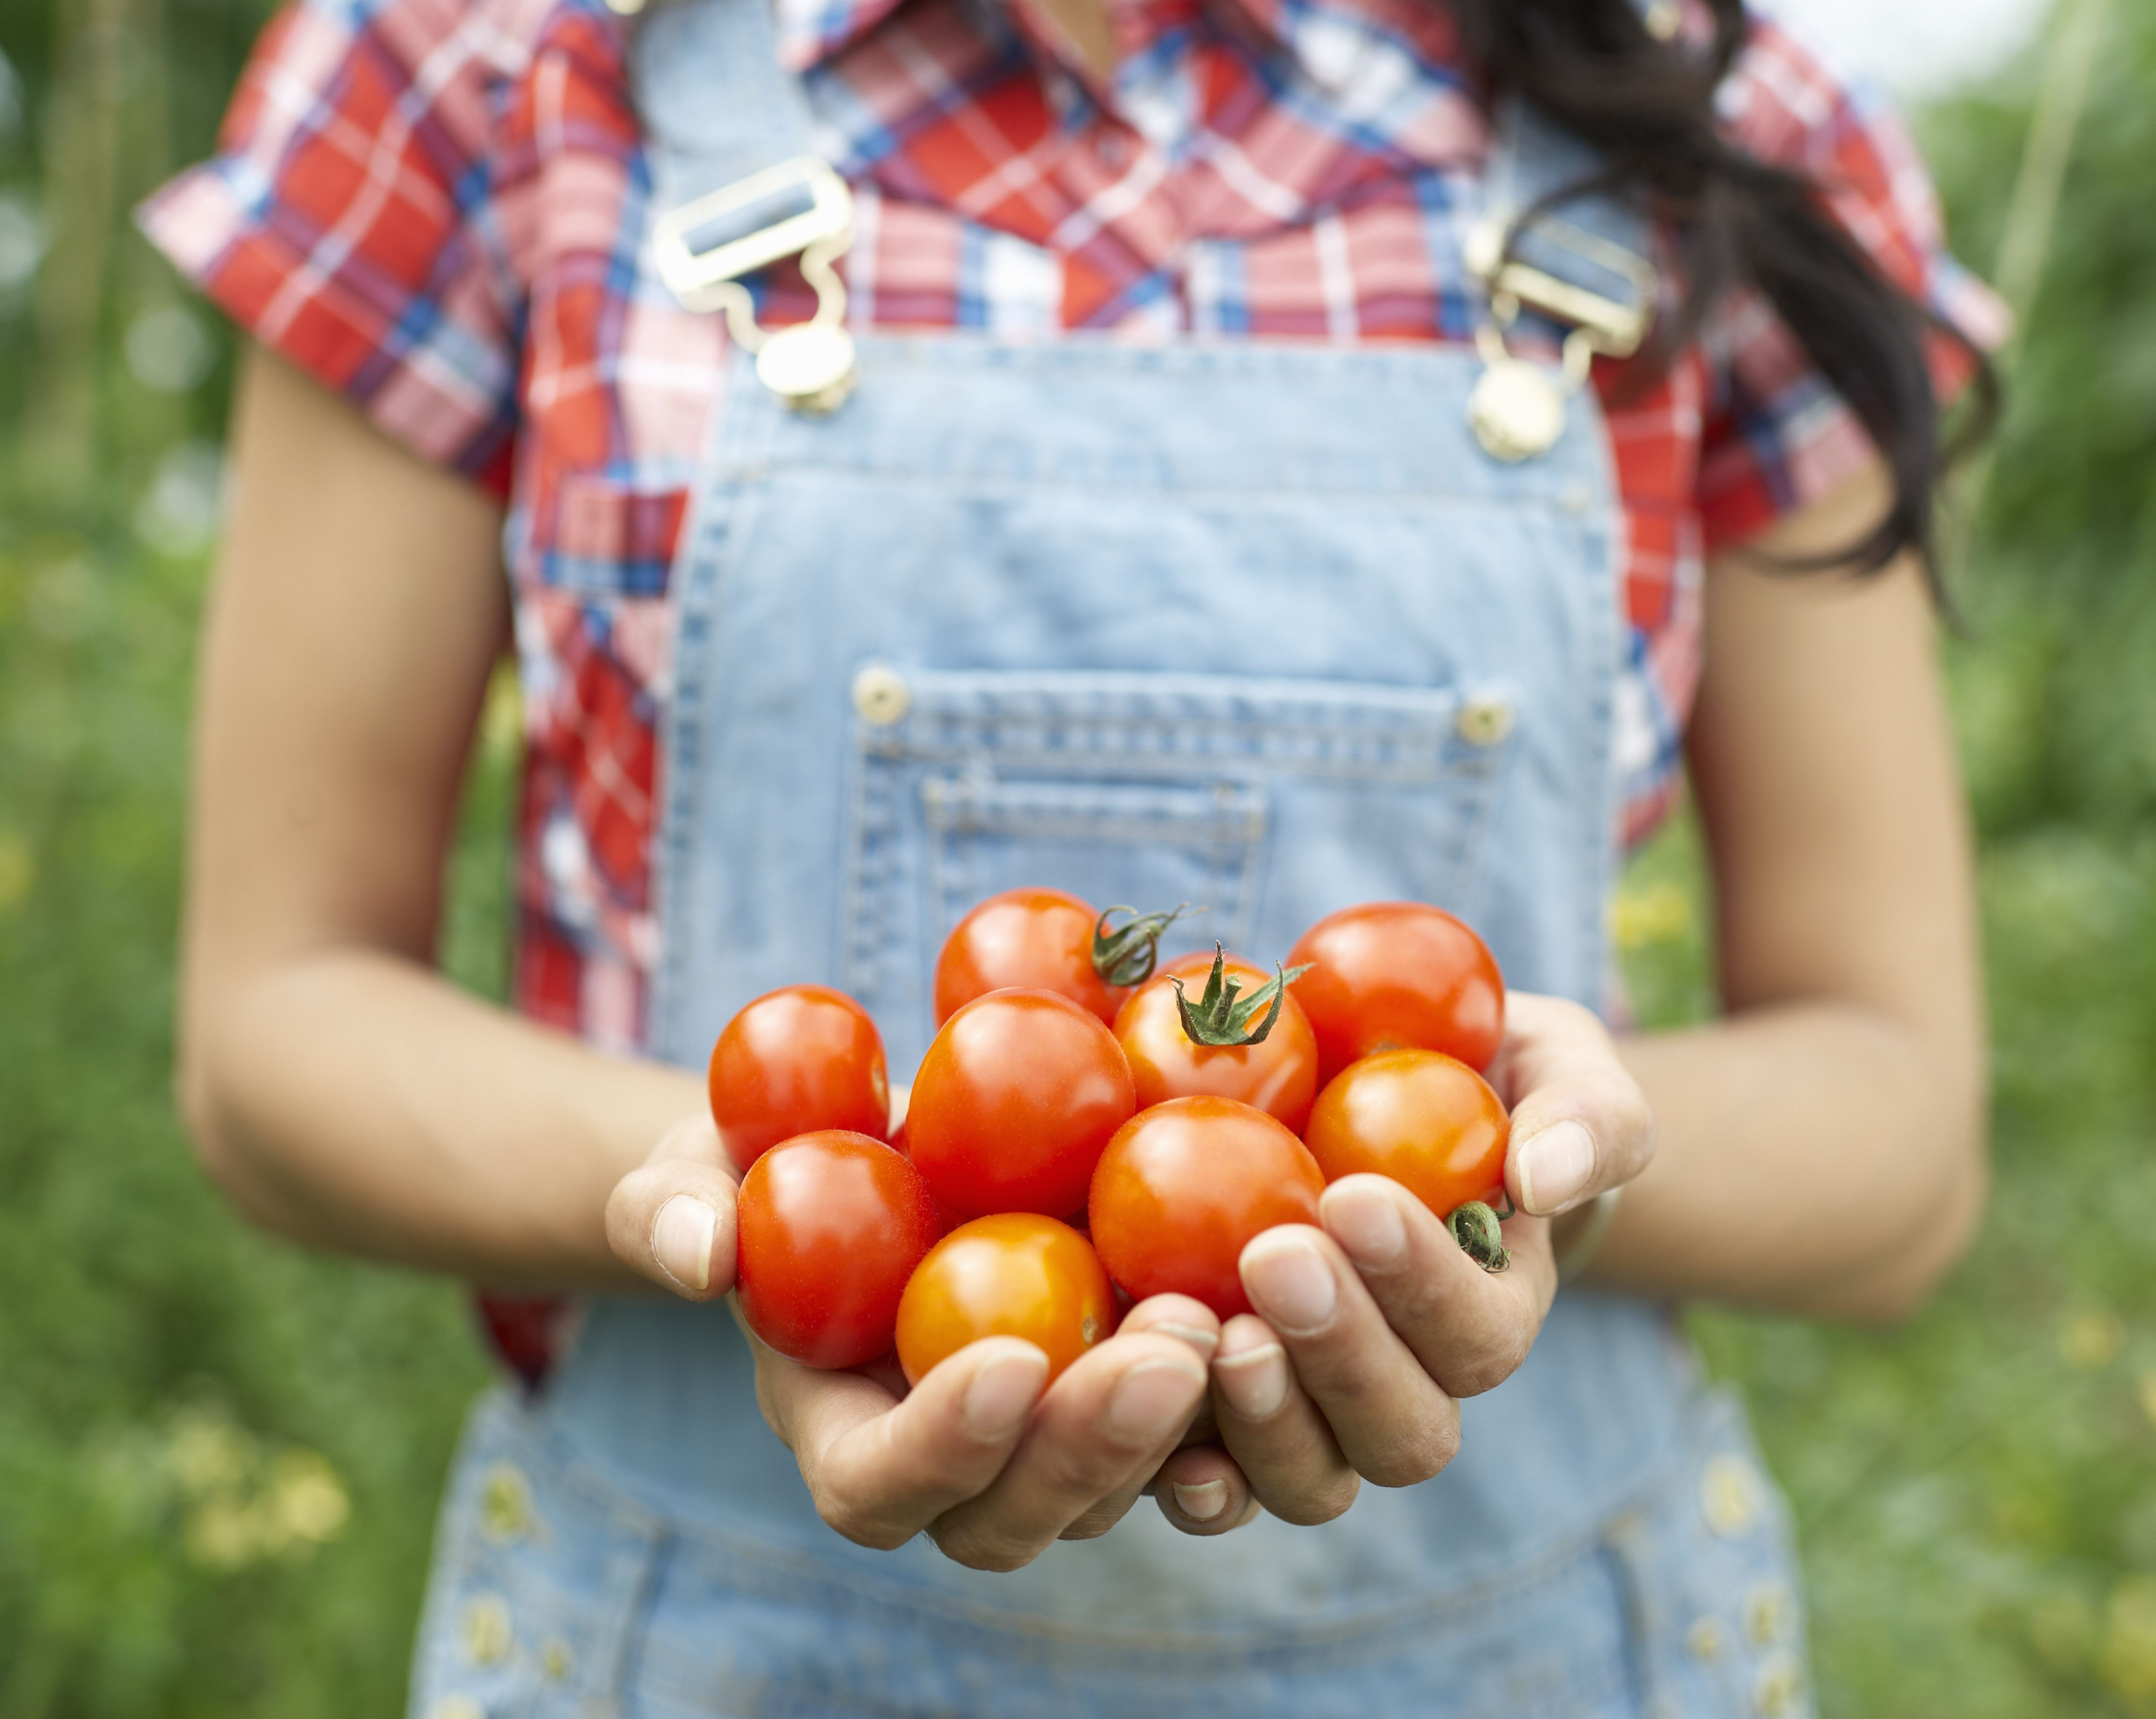 woman-holding-tomatoes-in-hands-177220132-588555883df78c2ccdbc1e71 (1).jpg